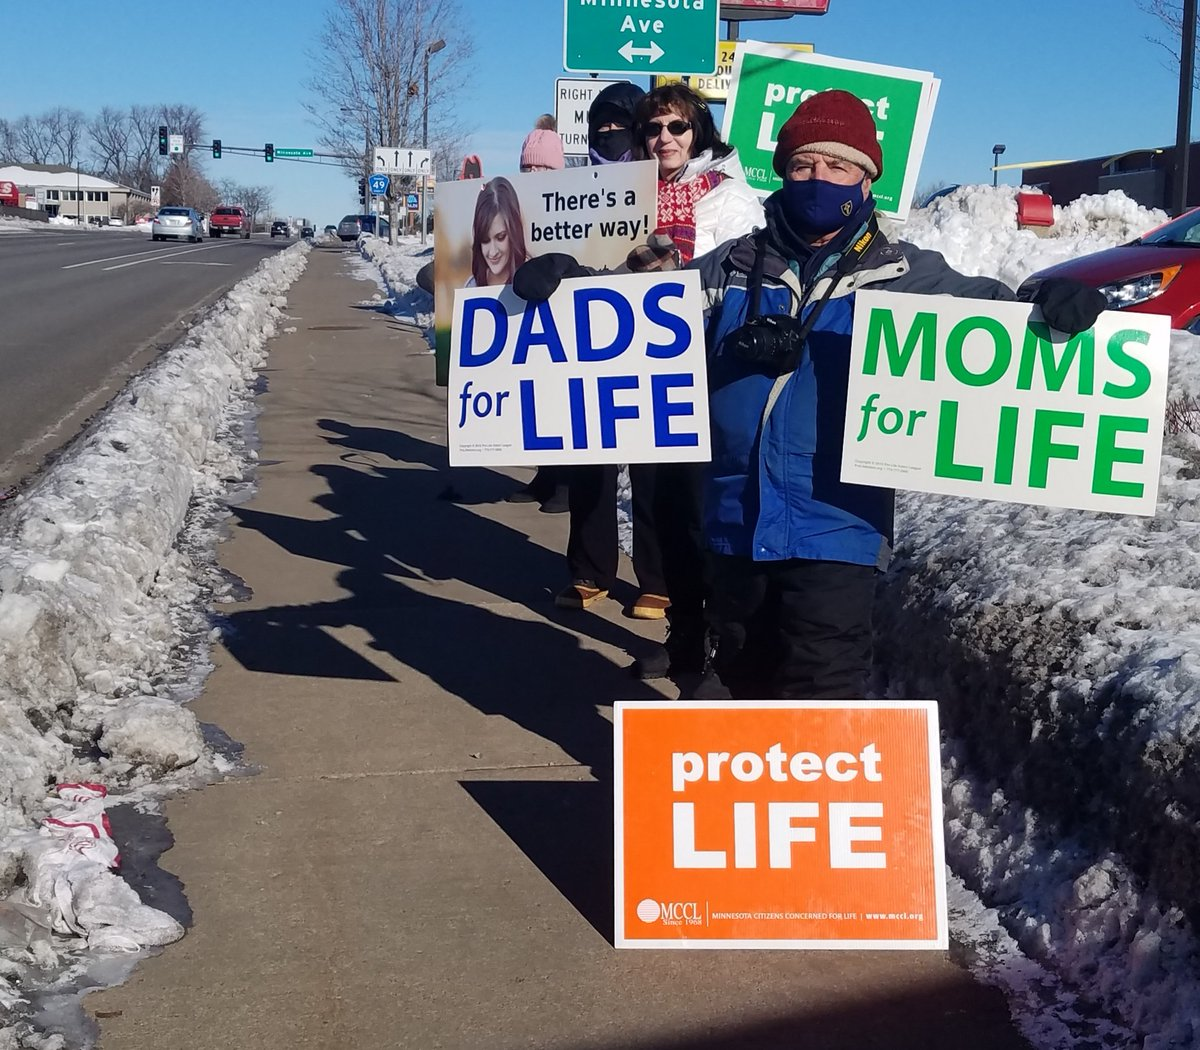 Small, cold group today praying in front of Planned Parenthood. #endAbortion #RoevWade